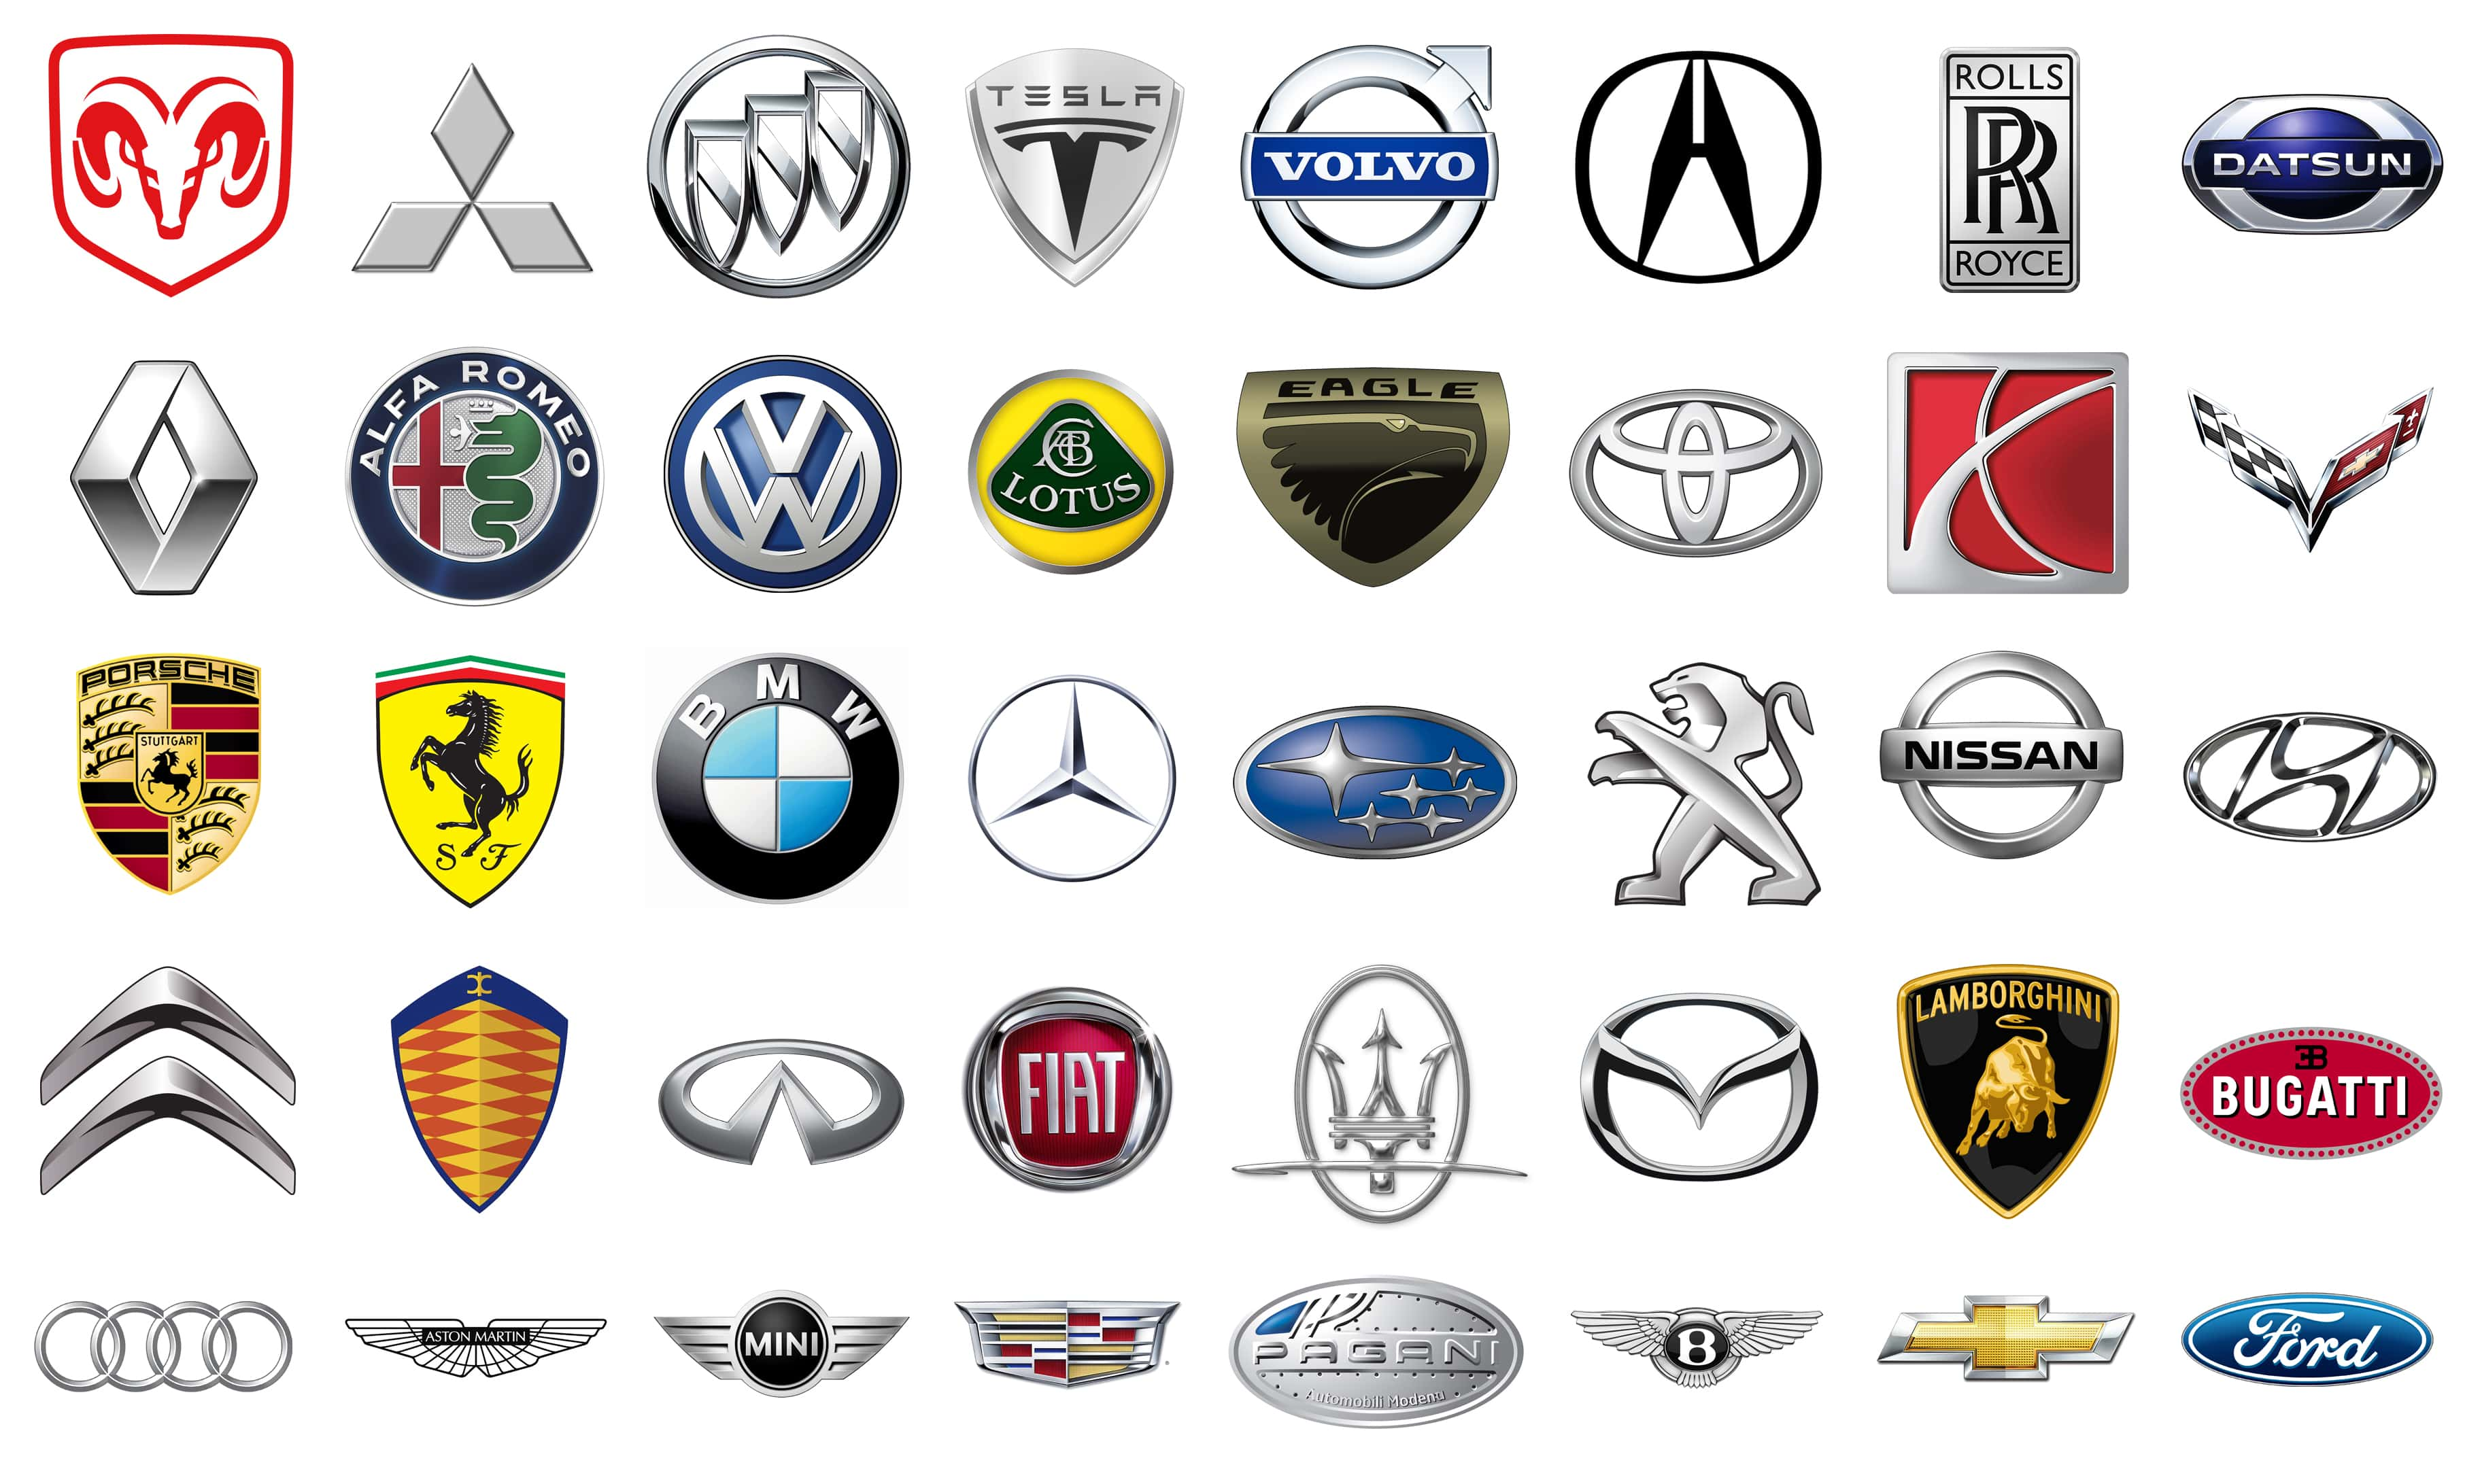 all car brand logos and names in the world cars image 2018